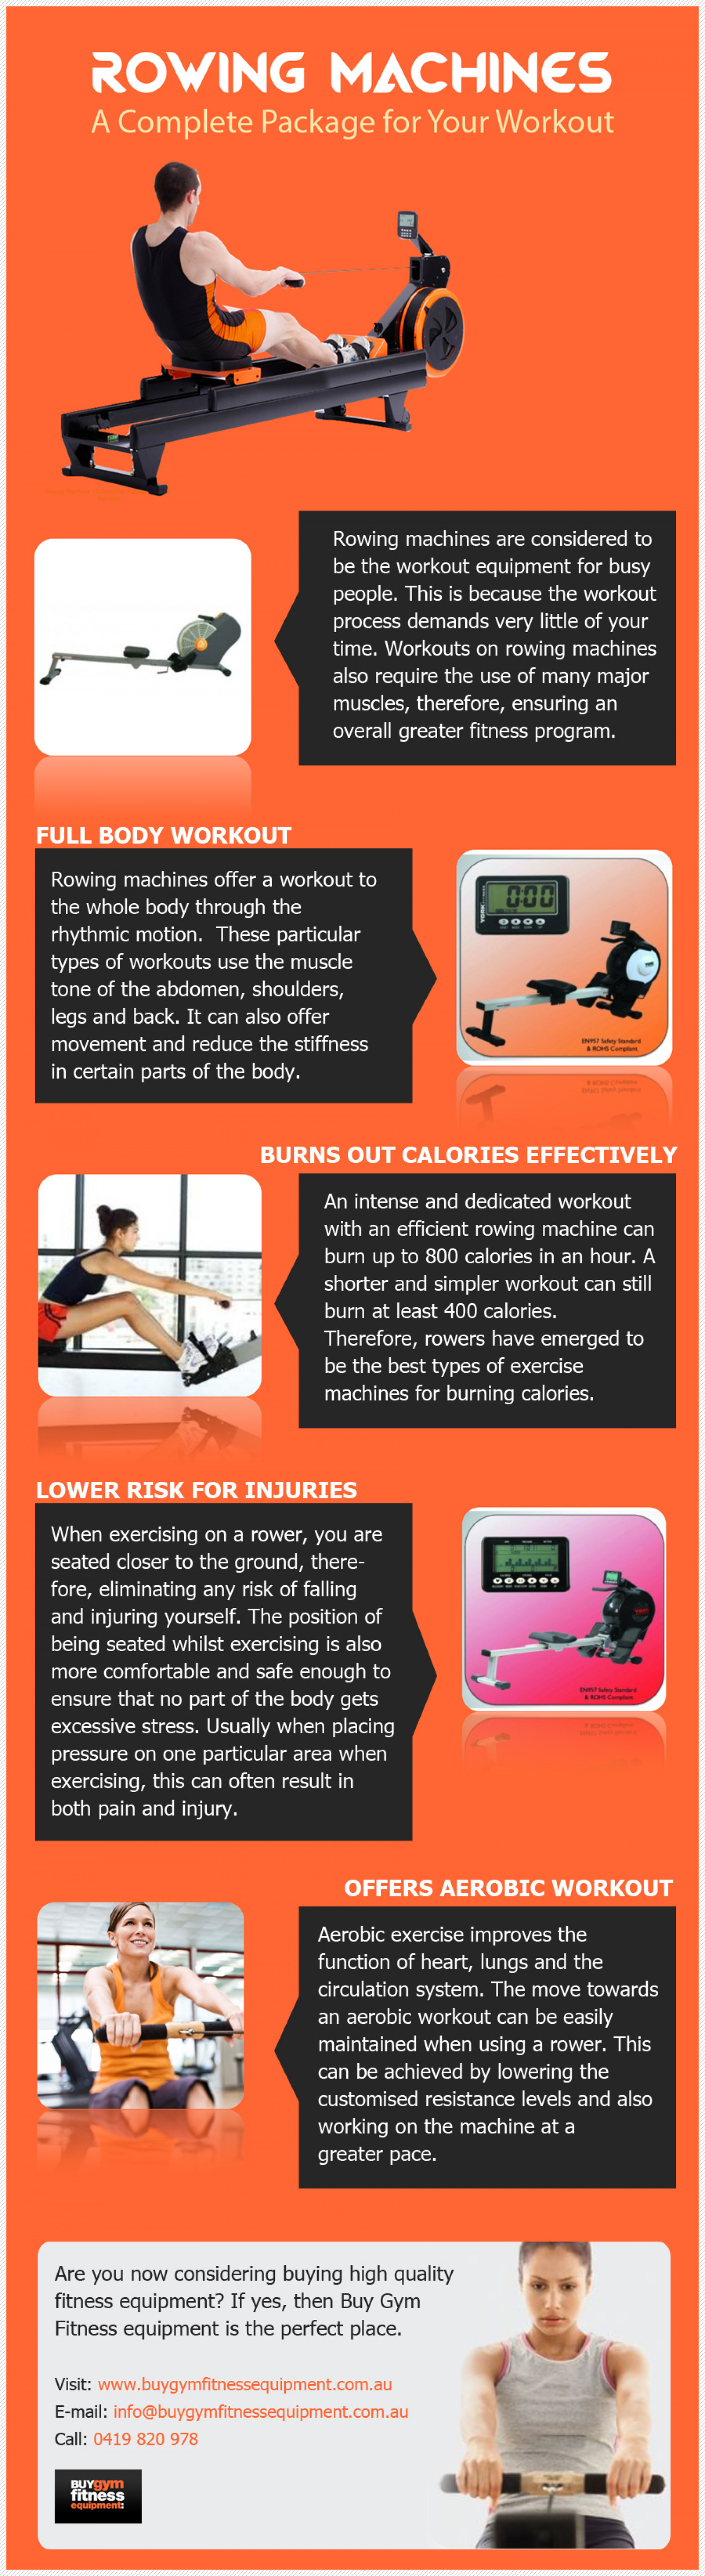 Gym & Fitness Equipment Australia - Rowing Machines: A Full Workout Package Infographic